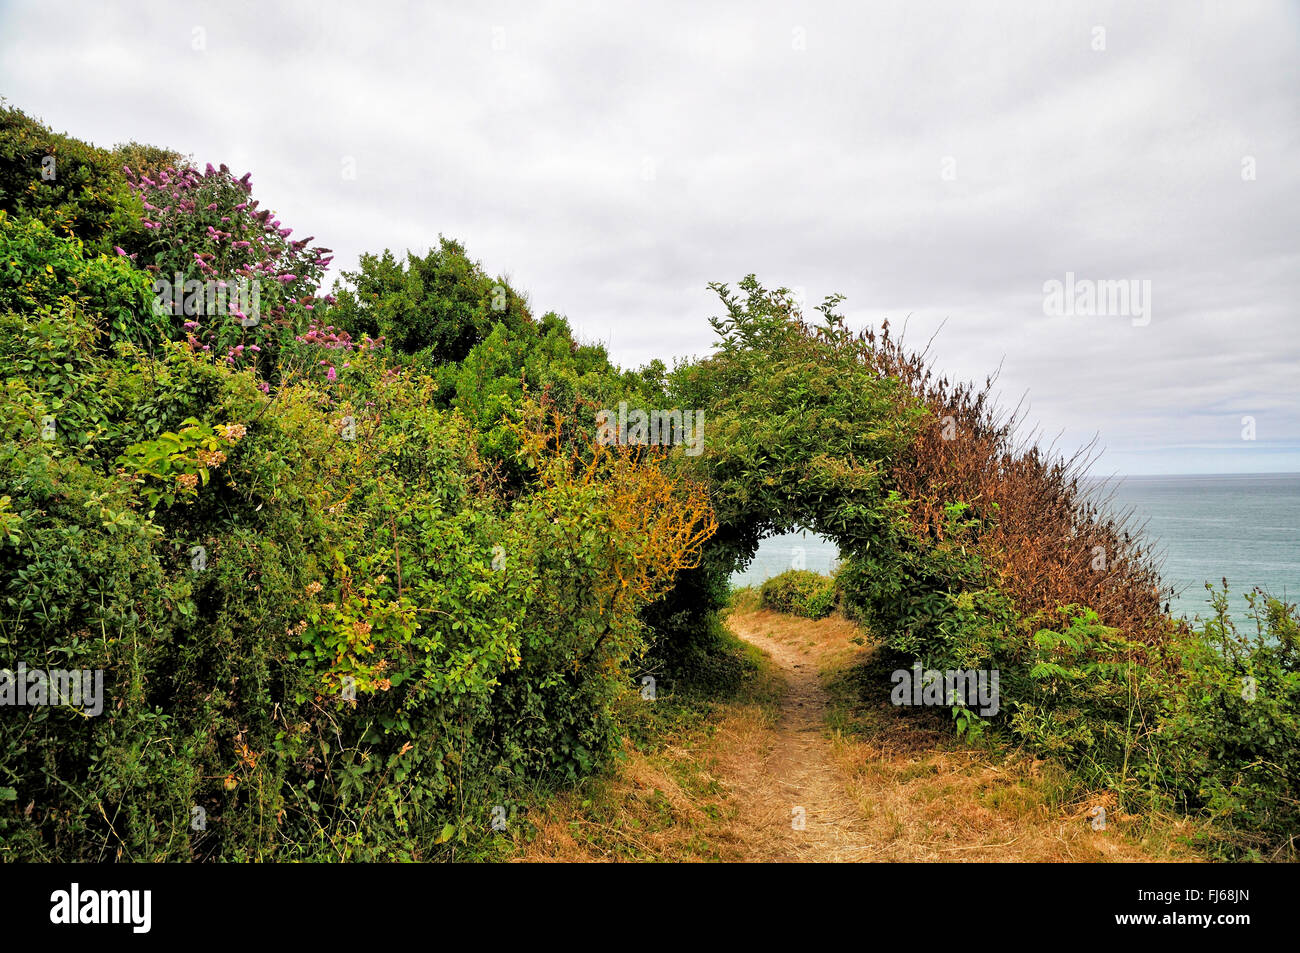 passage through shrubs at coastal walking trail GR34 at the Breton coast, France, Brittany, D�partement C�tes-d�Armor, - Stock Image